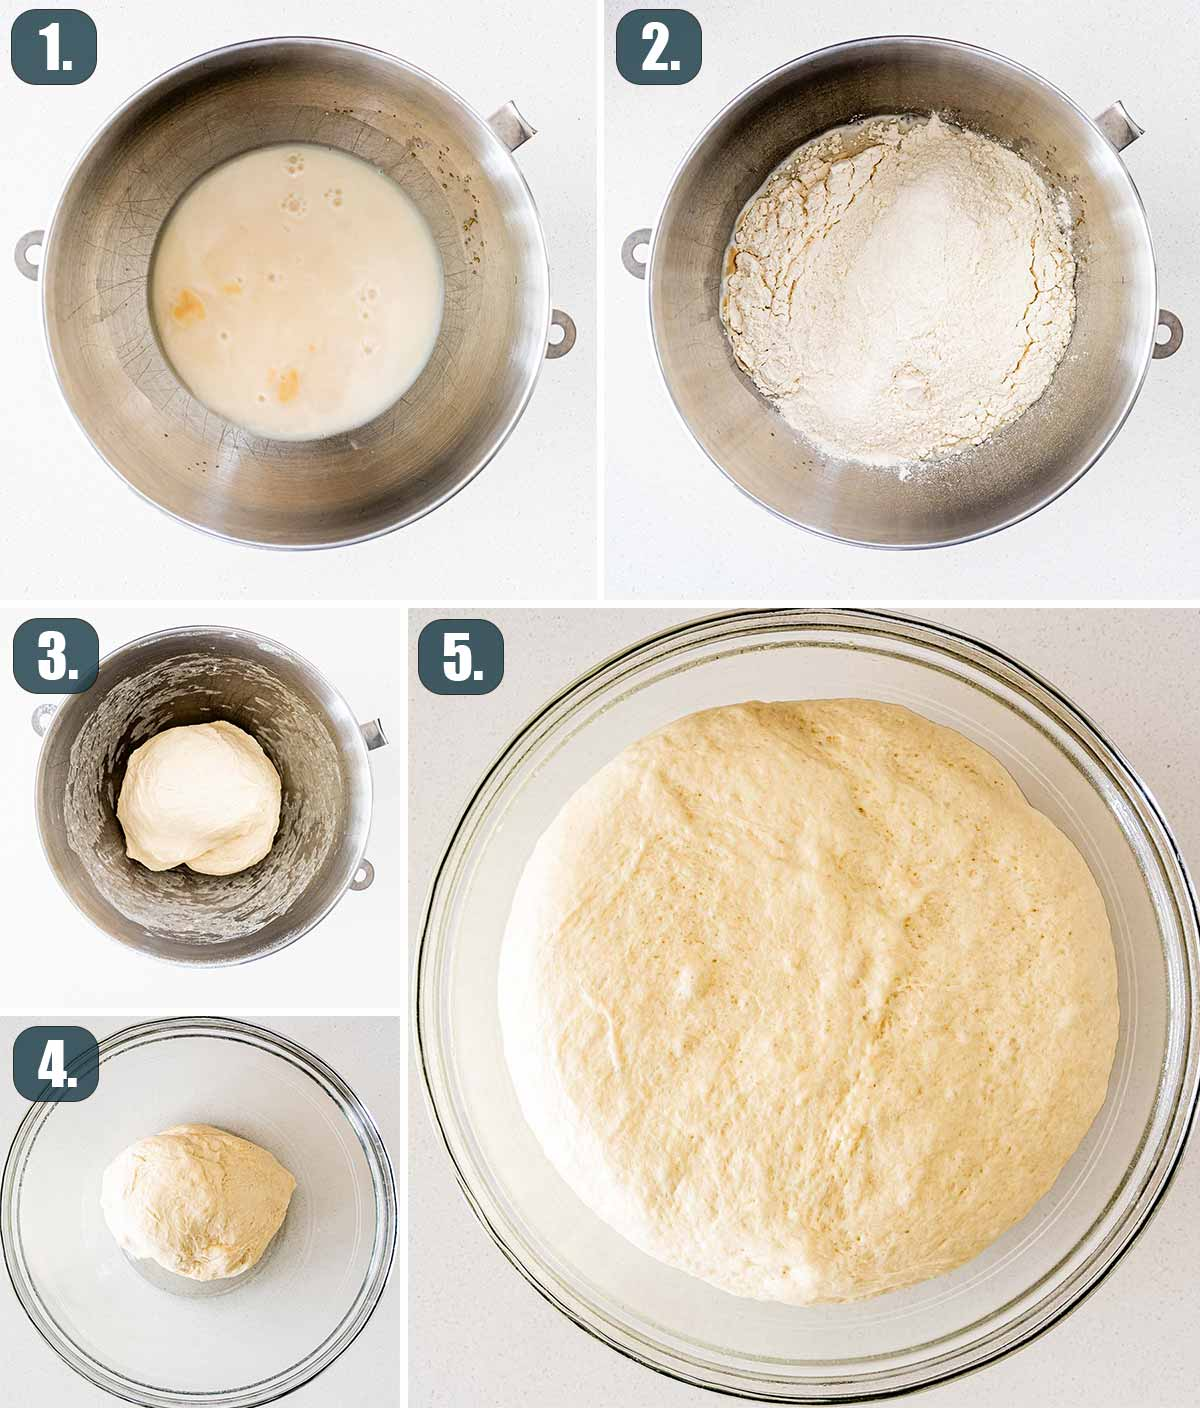 detailed process shots showing how to make dough for soft pretzels.